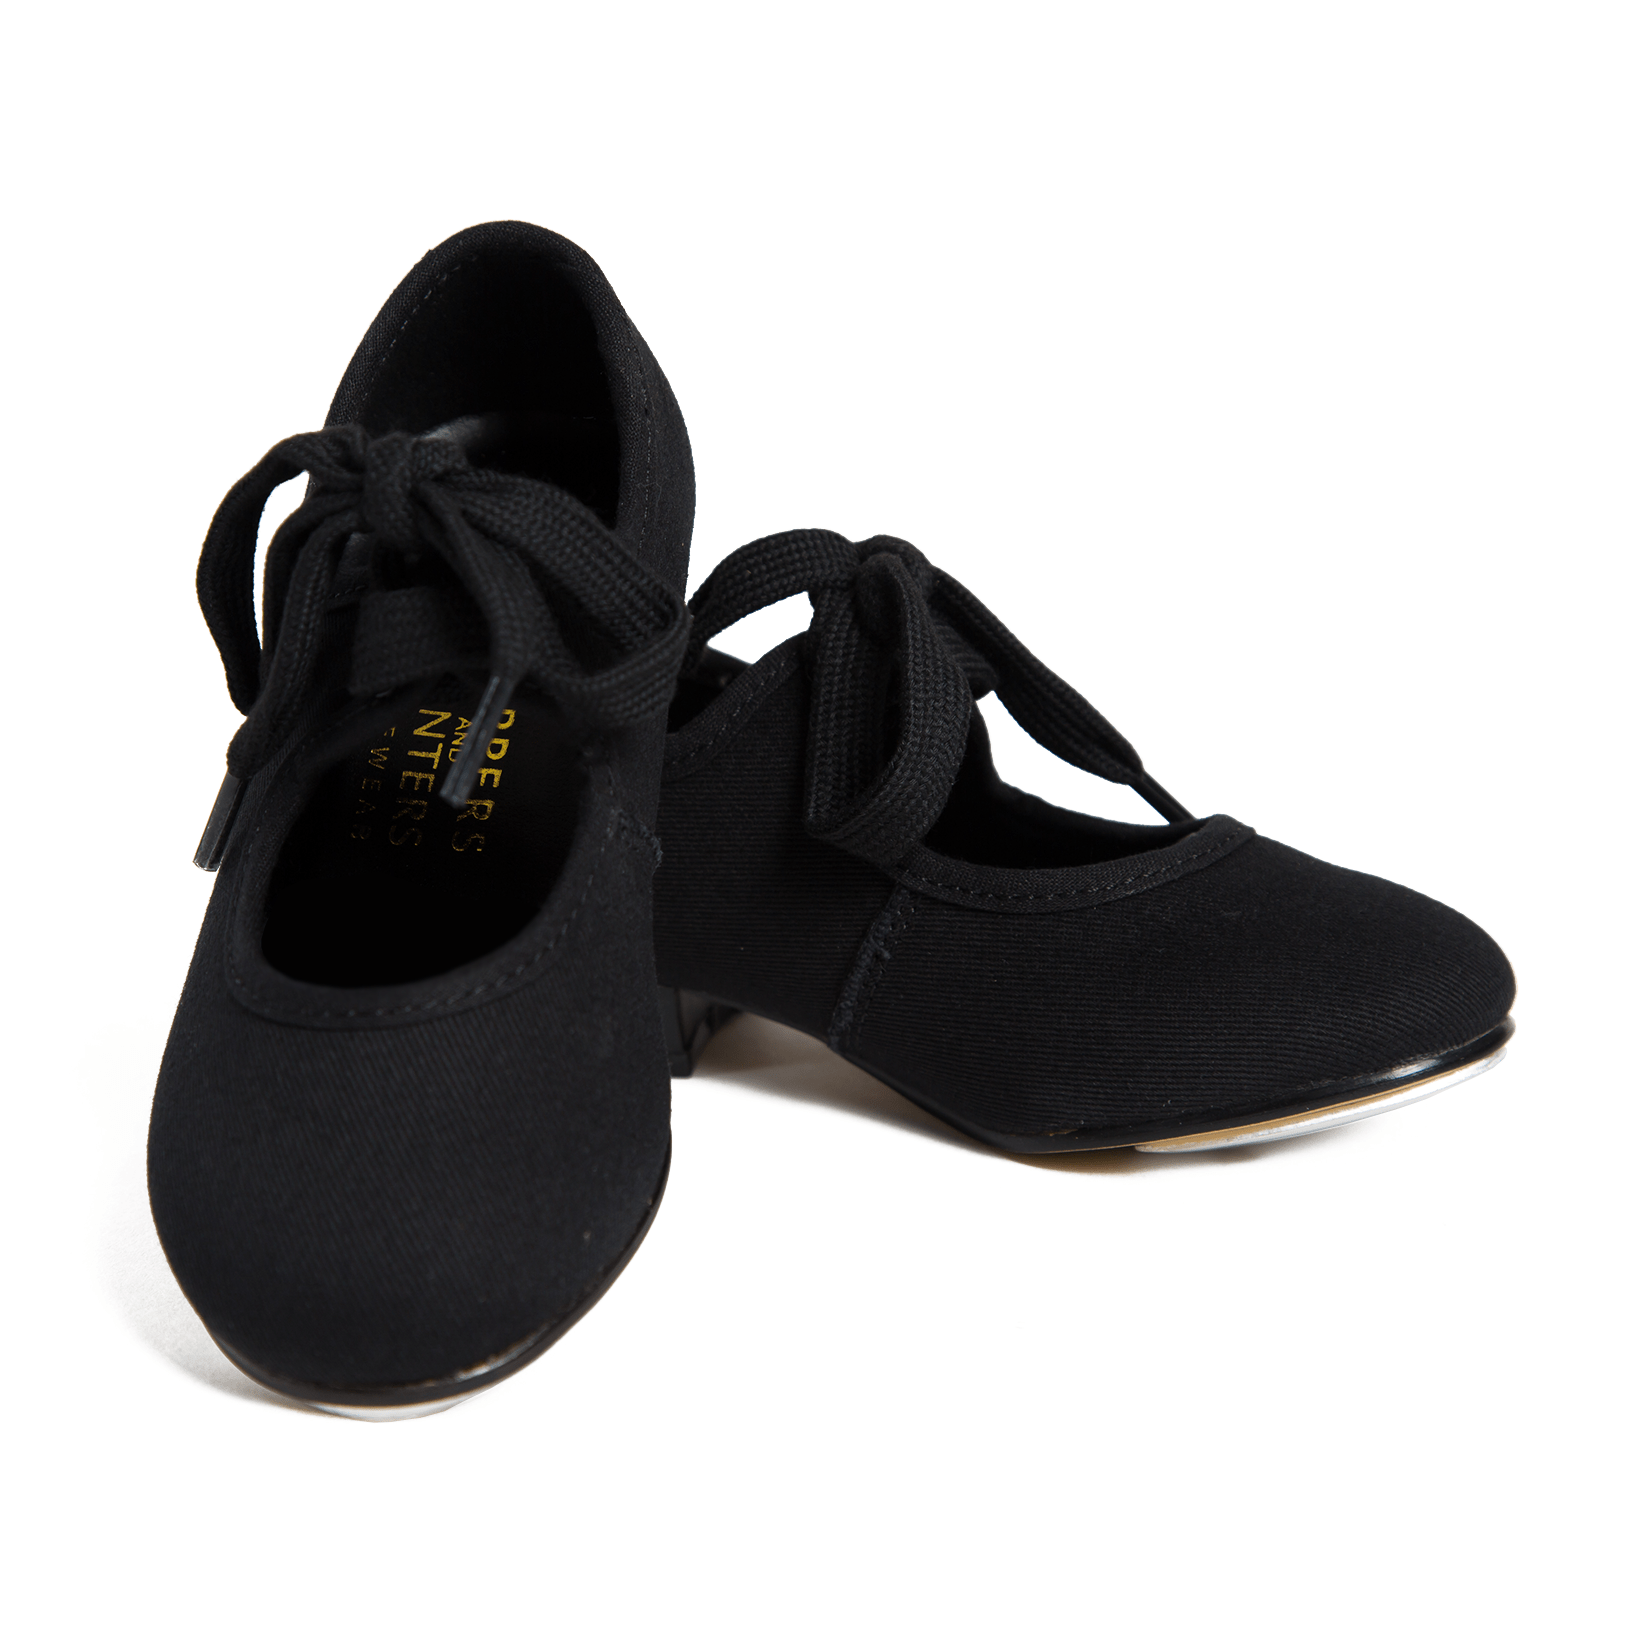 Revolution Tie Tap Shoes Size